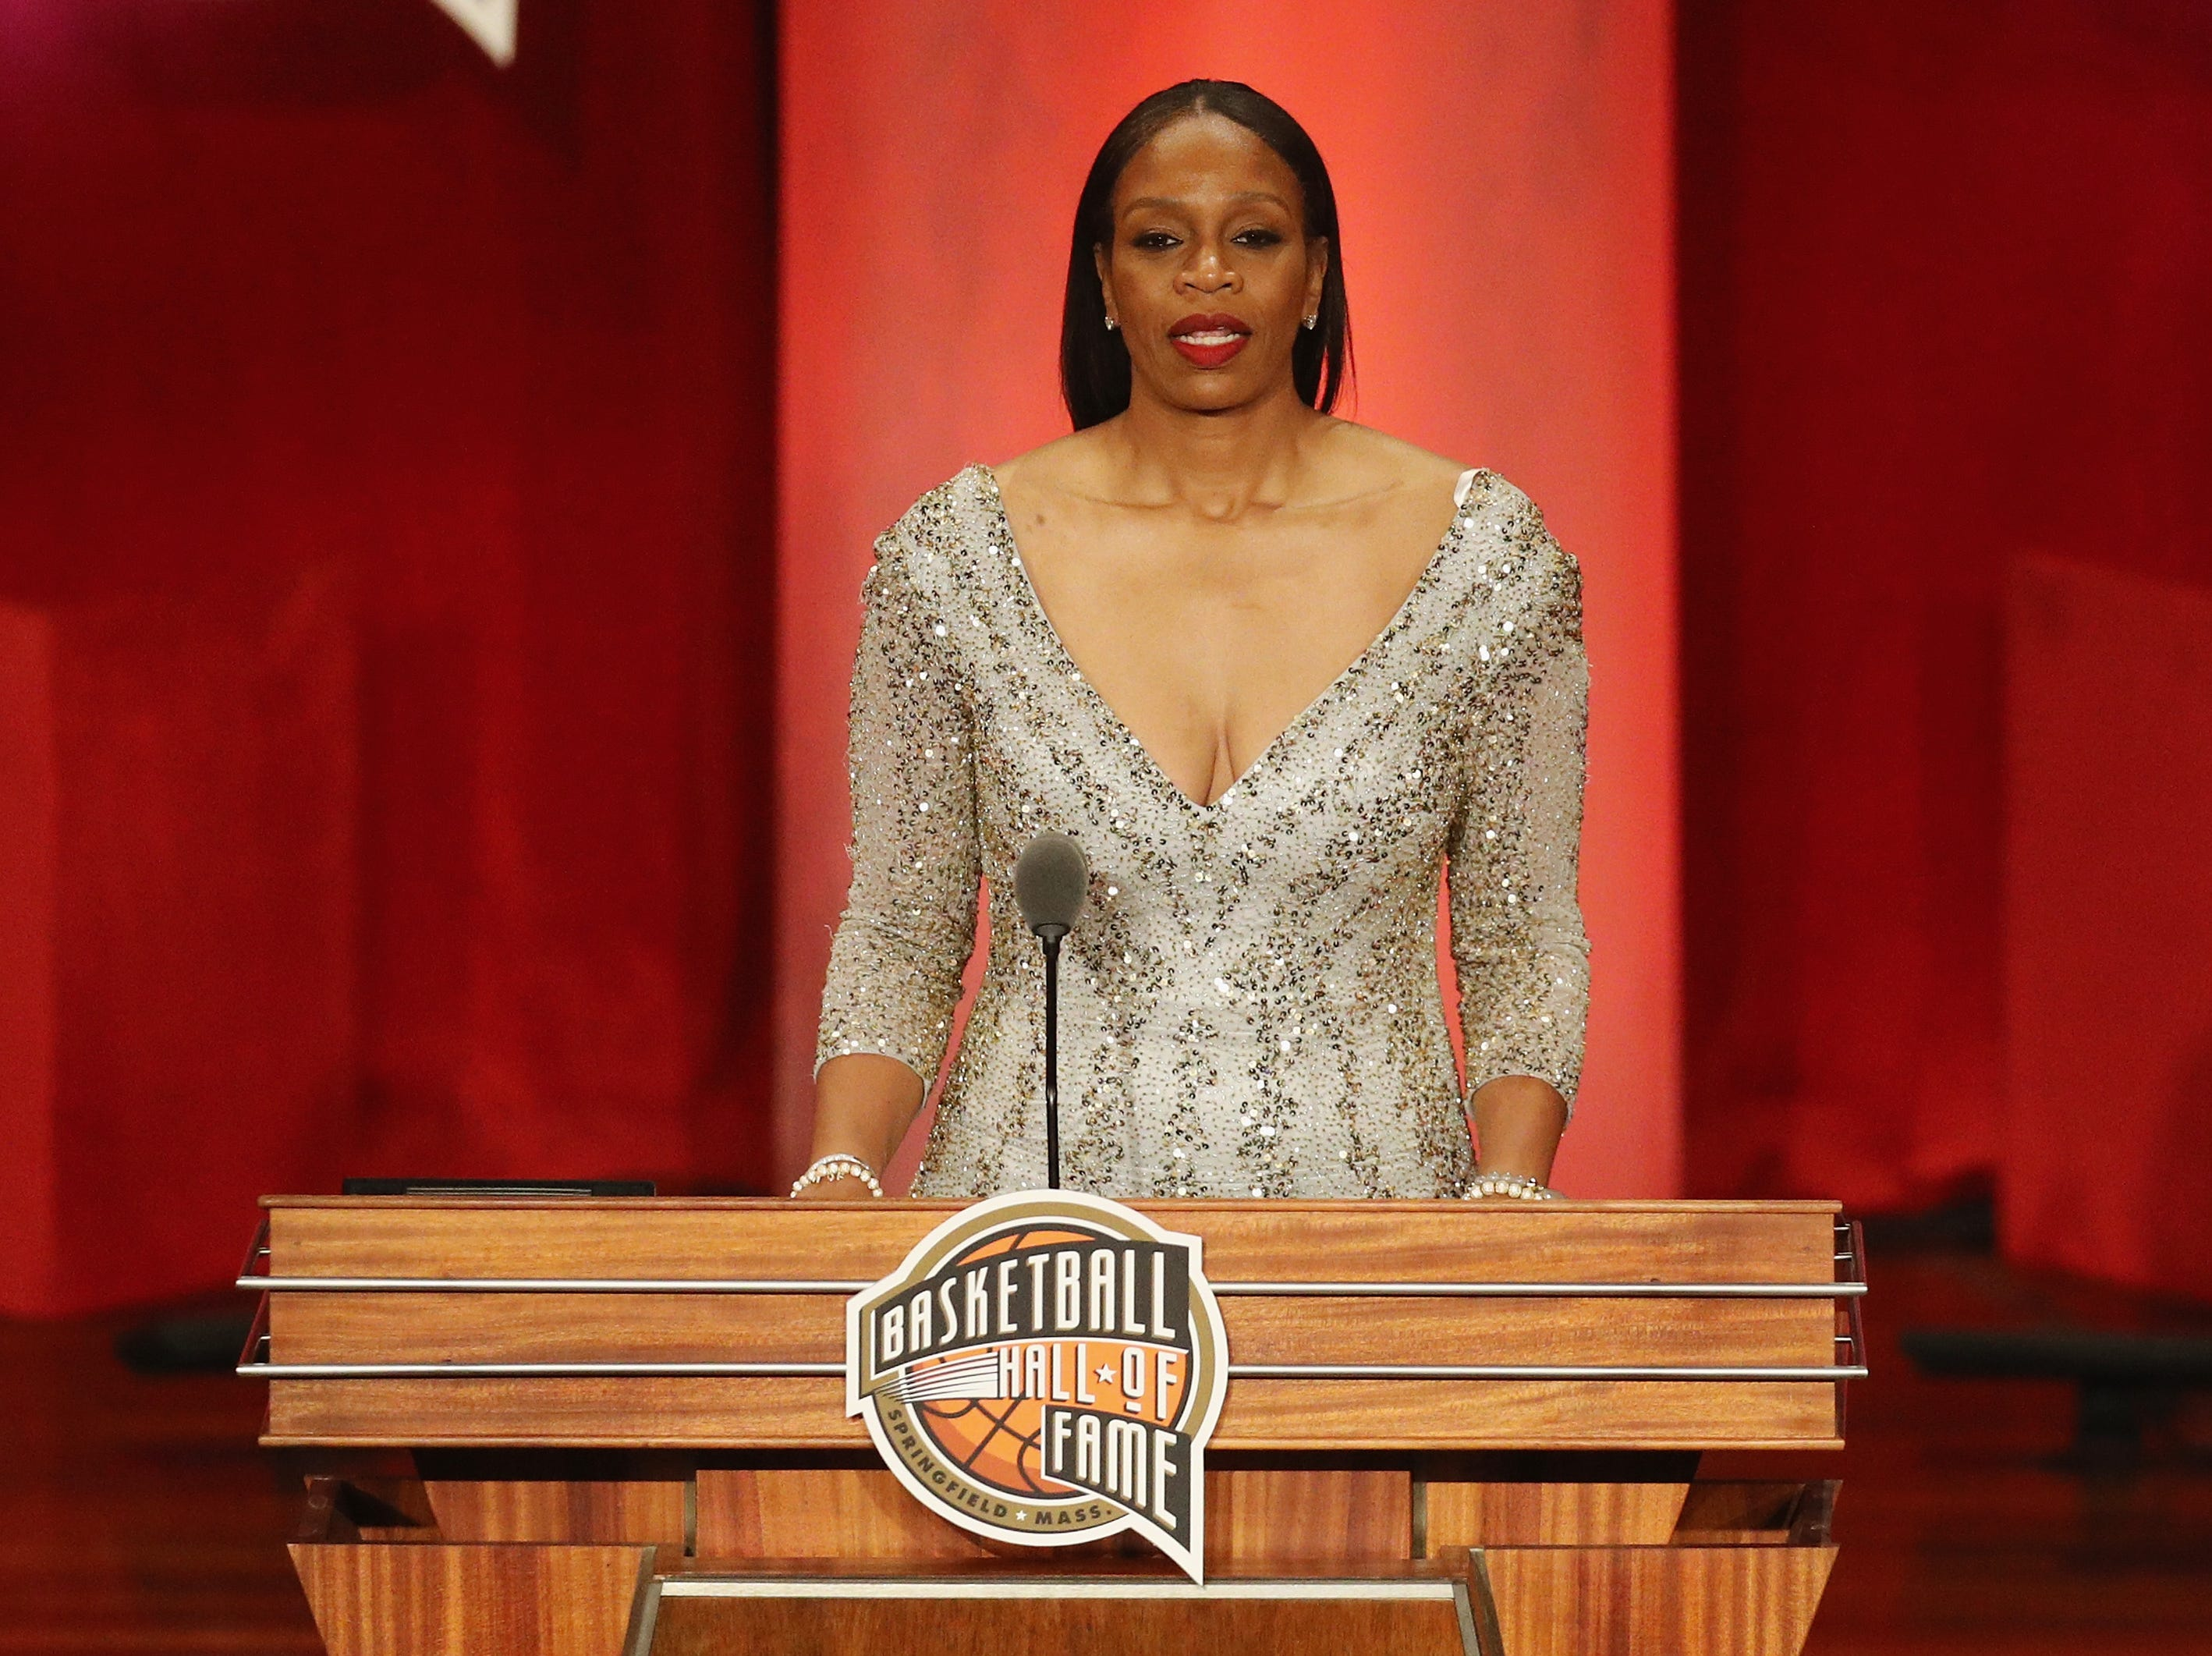 Tina Thompson speaks during the 2018 Basketball Hall of Fame Enshrinement Ceremony.